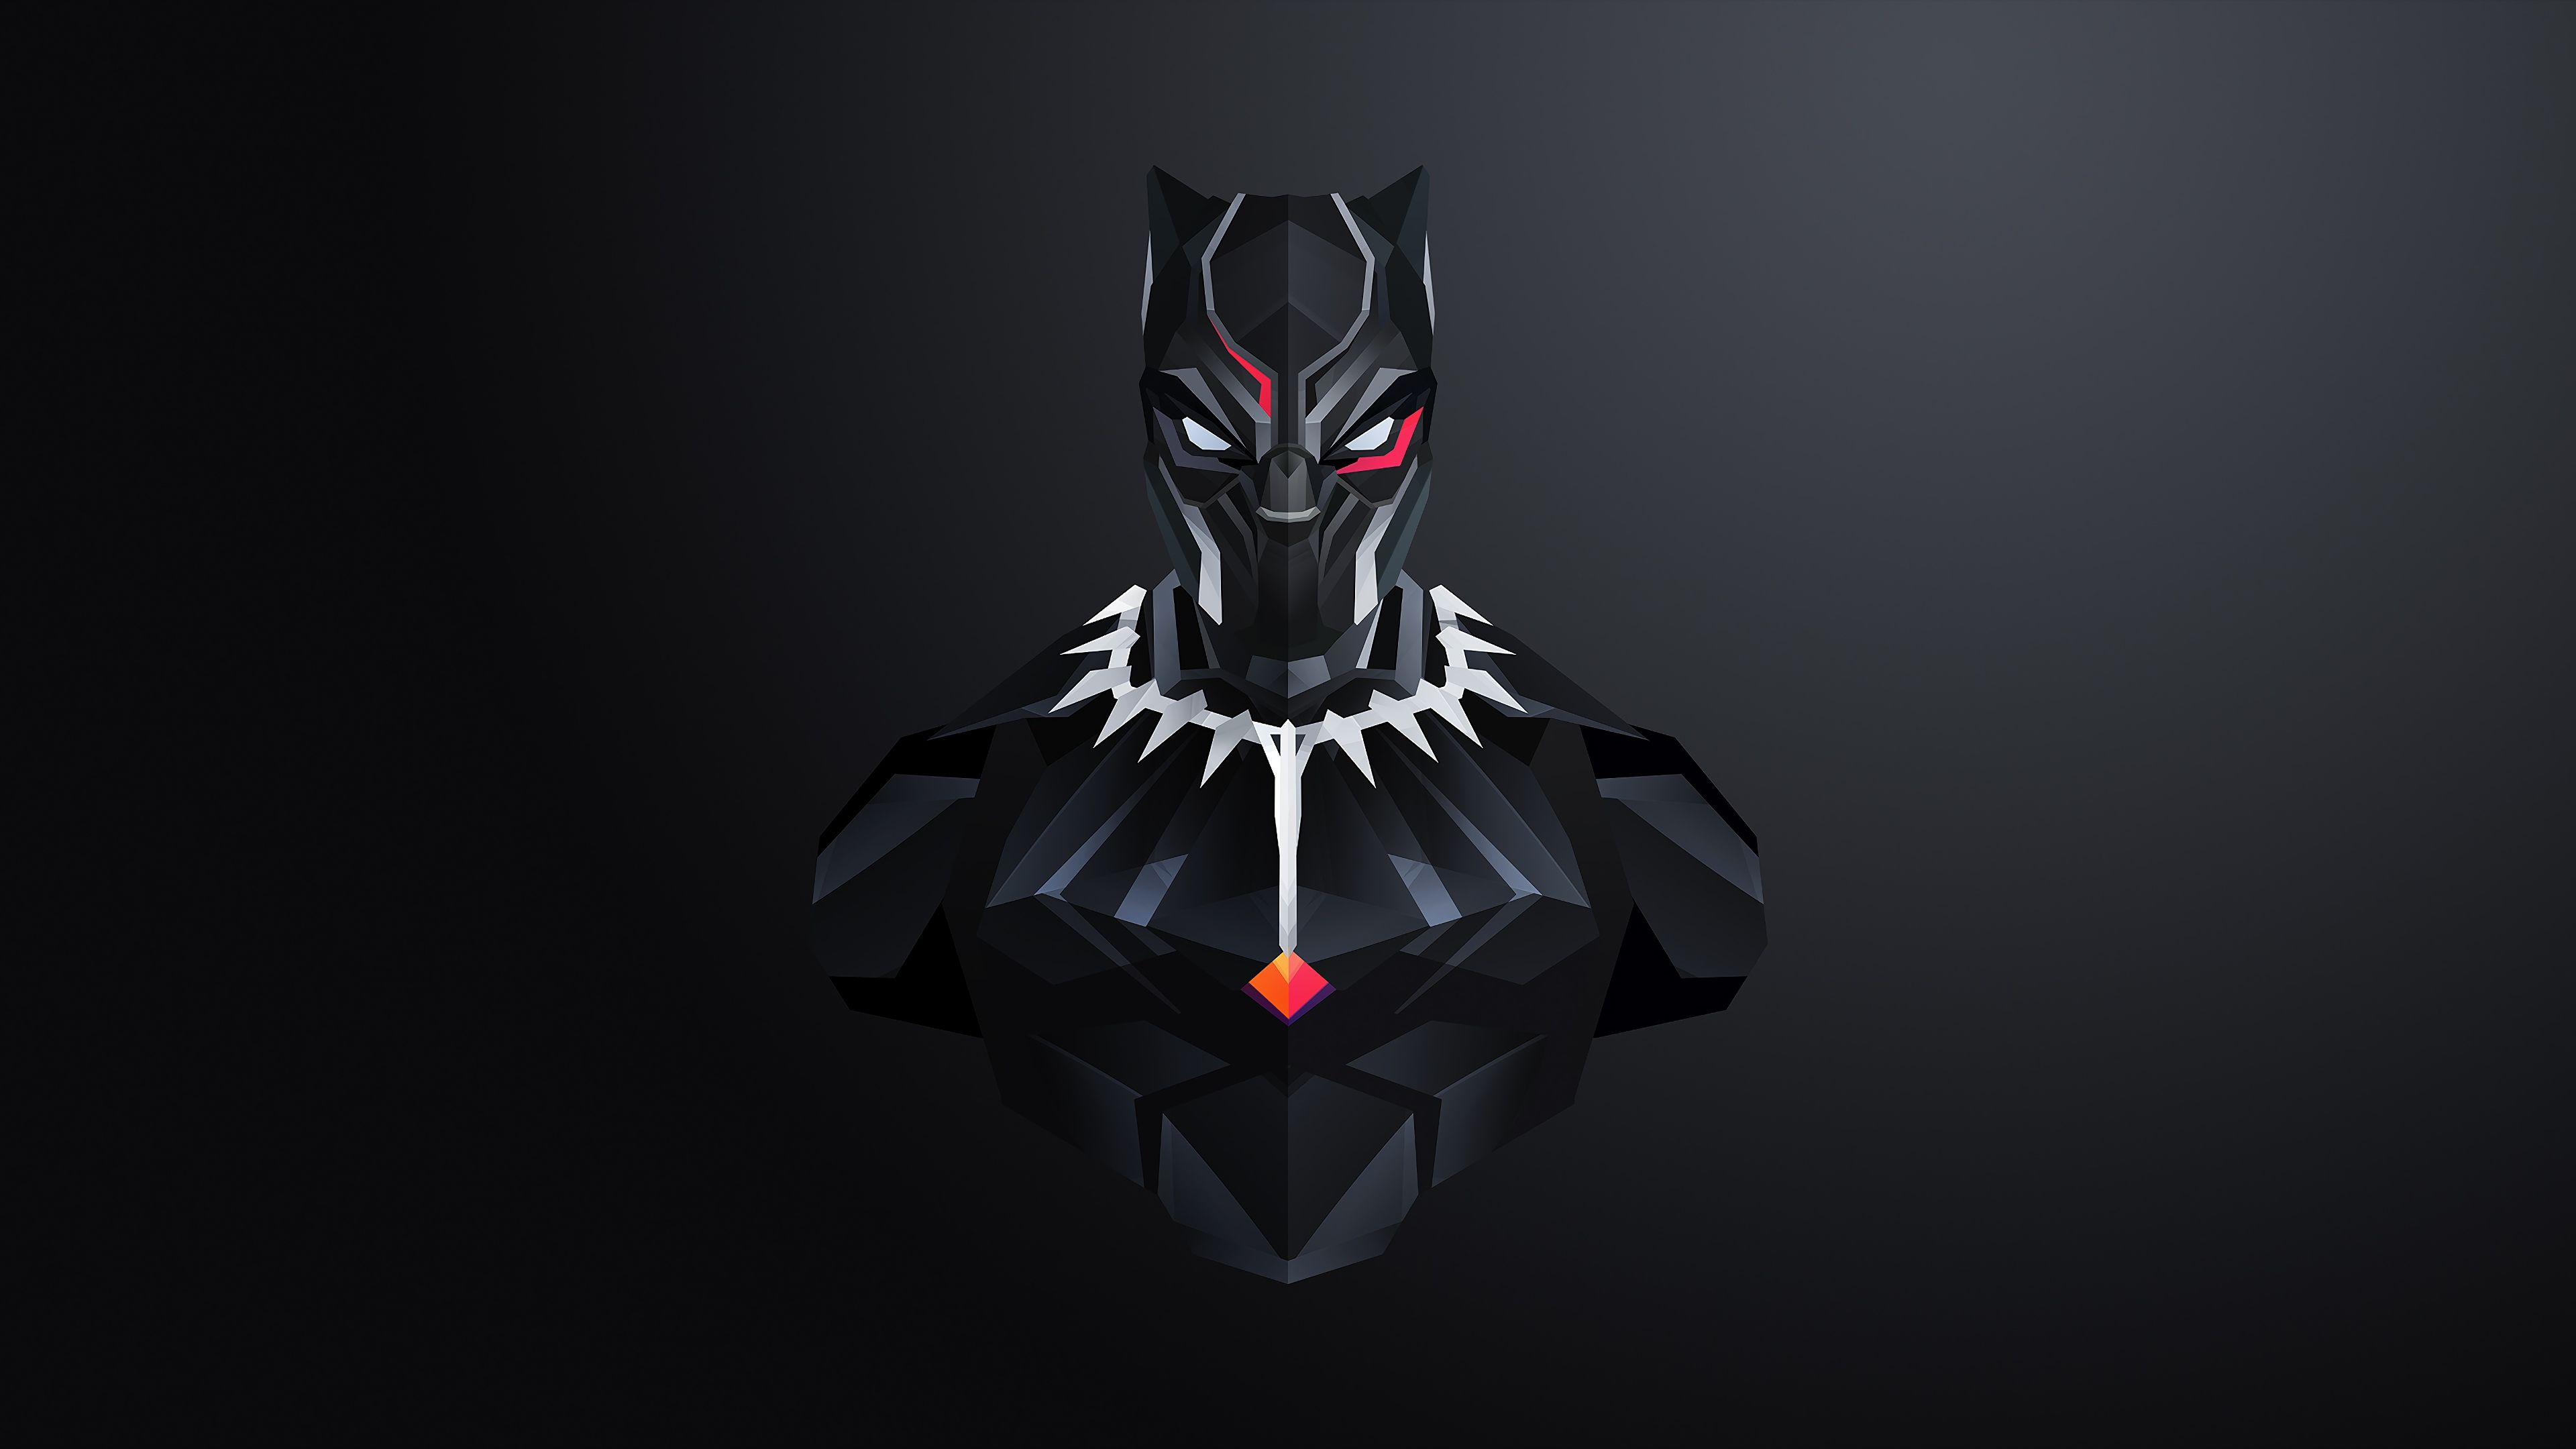 Cool Black Panther Wallpapers Top Free Cool Black Panther Backgrounds Wallpaperaccess